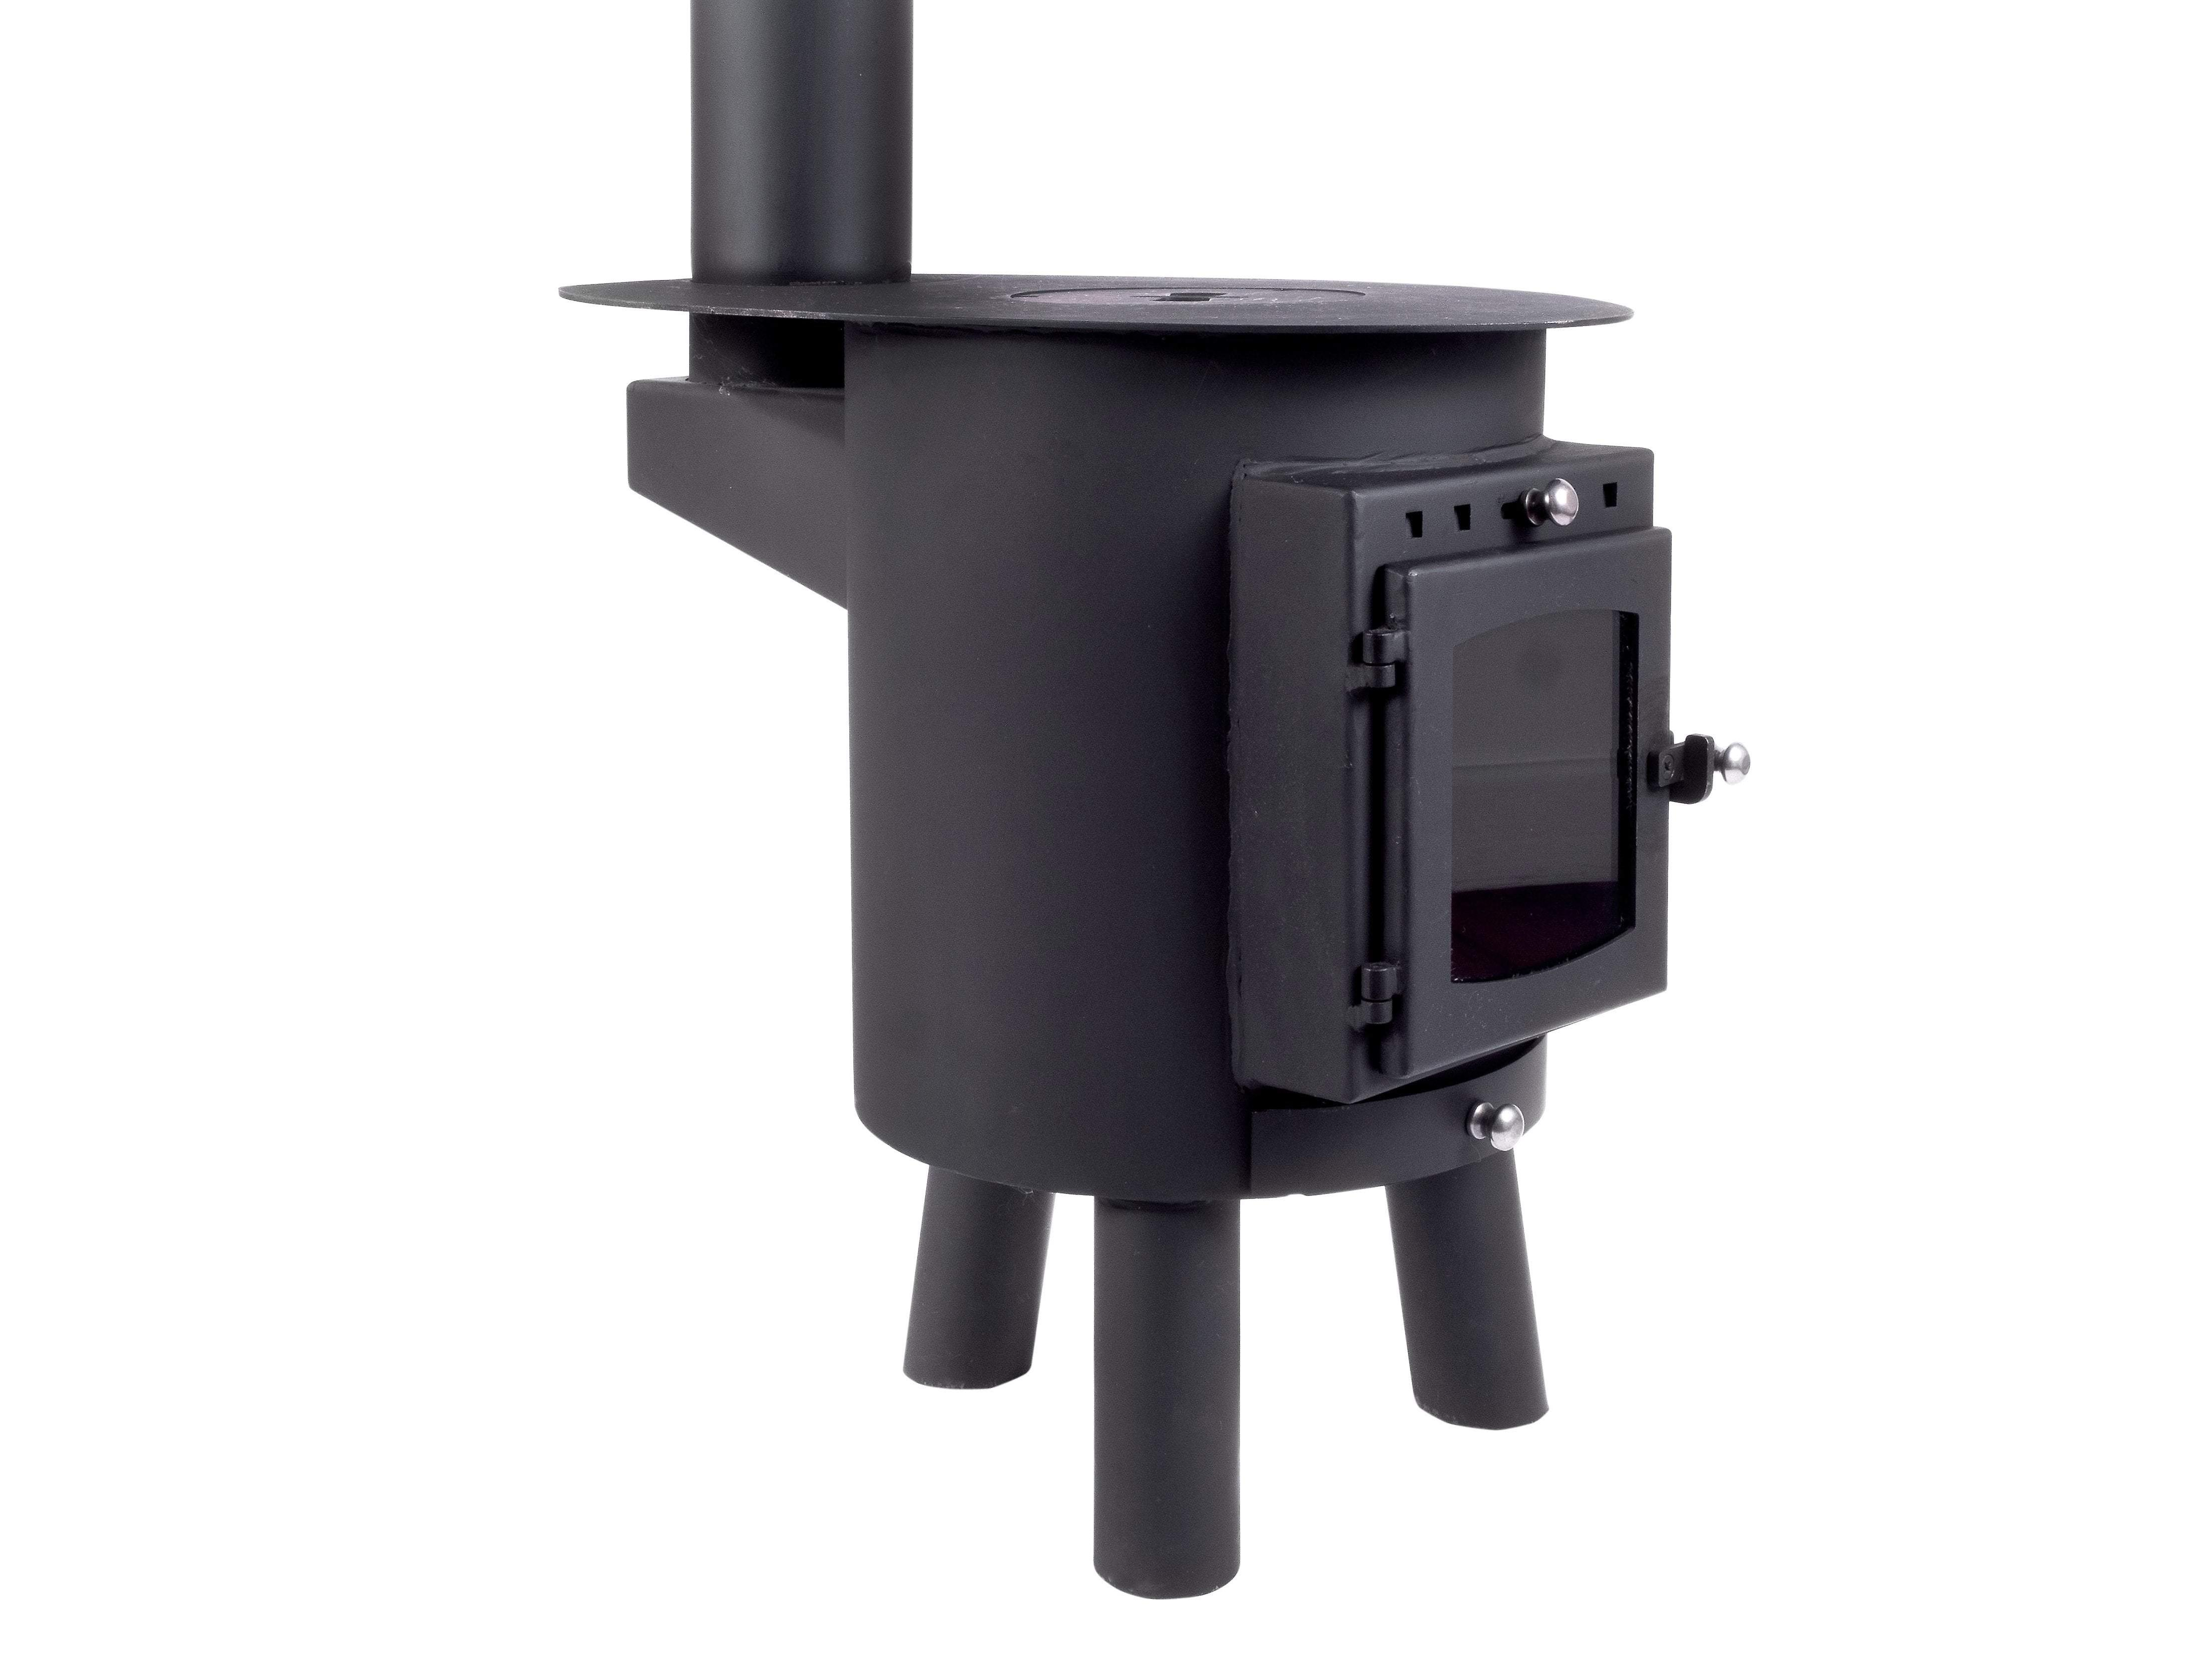 Outbacker® Hygge Oval Stove Full package